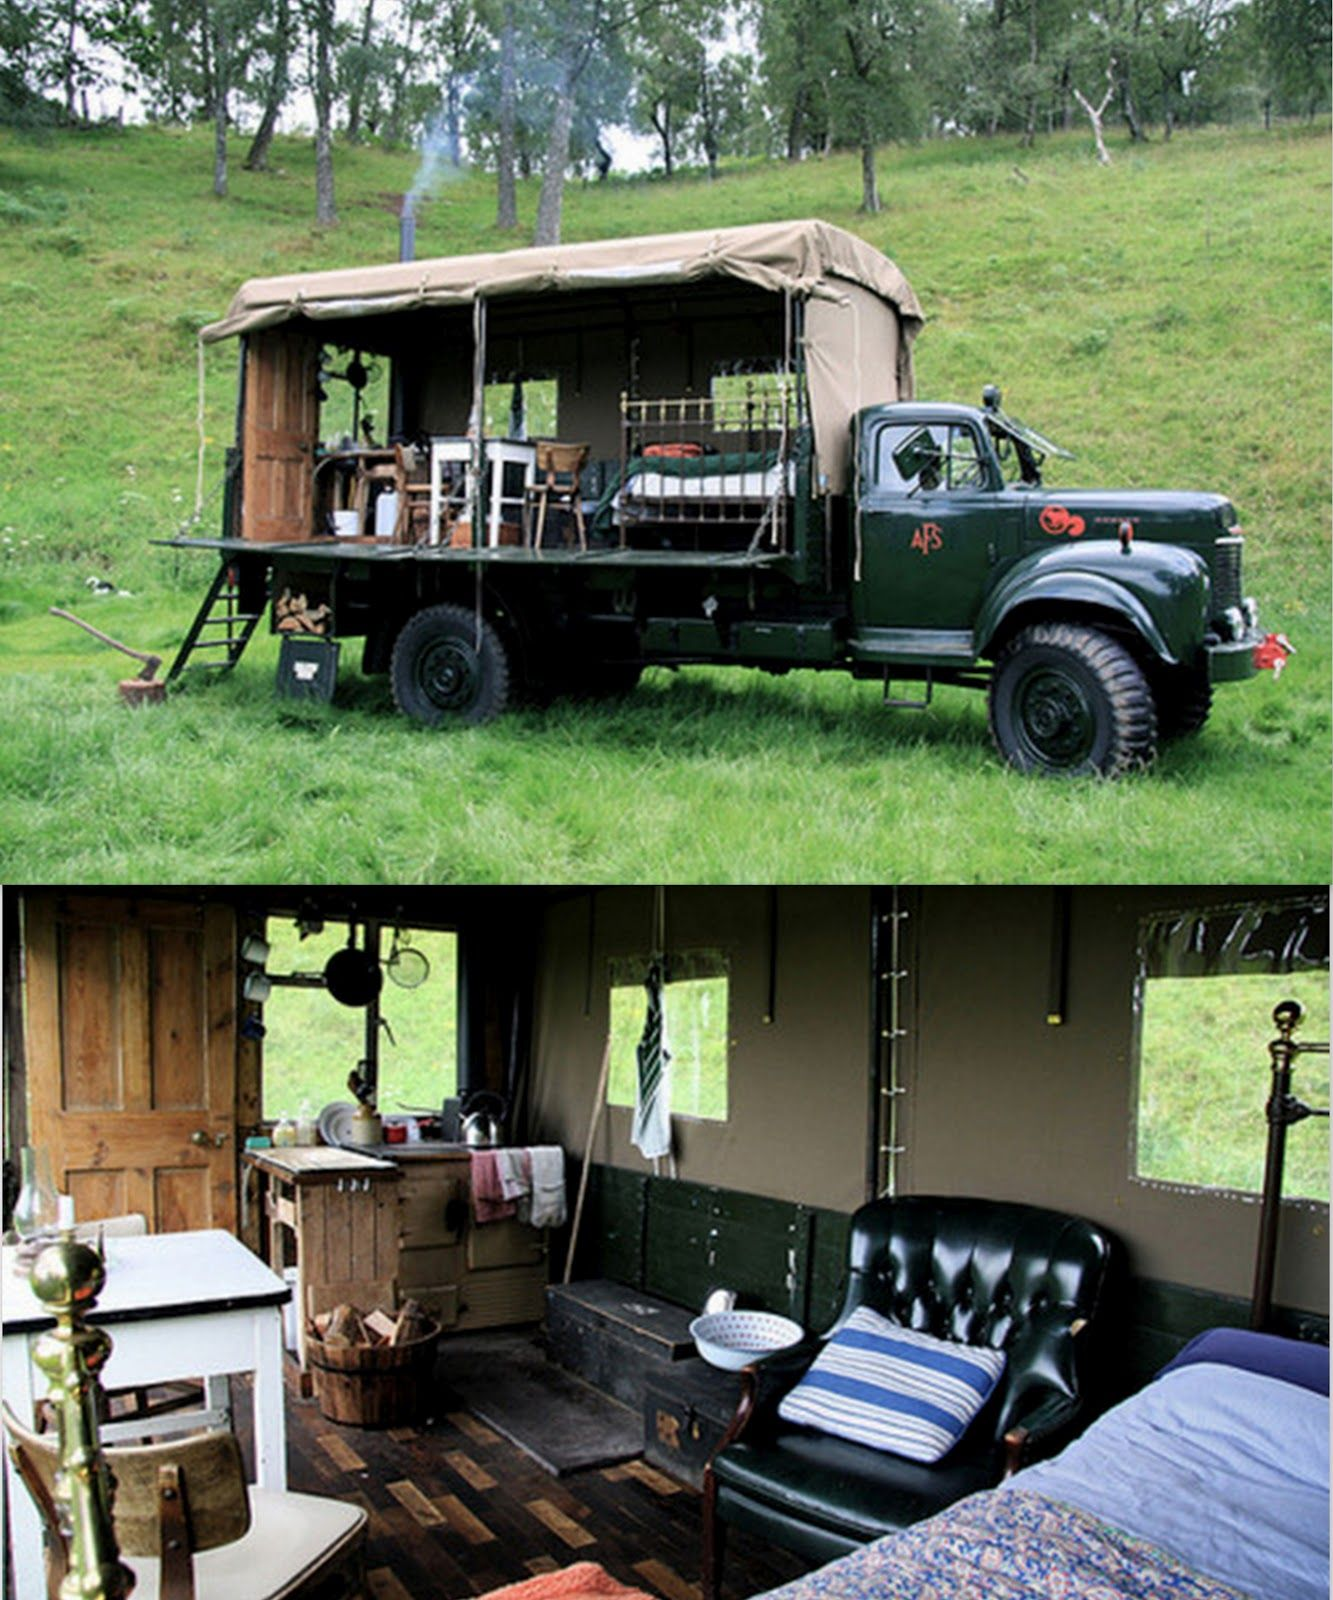 Truly A Camping Dream Via Lost In America On Tumblr